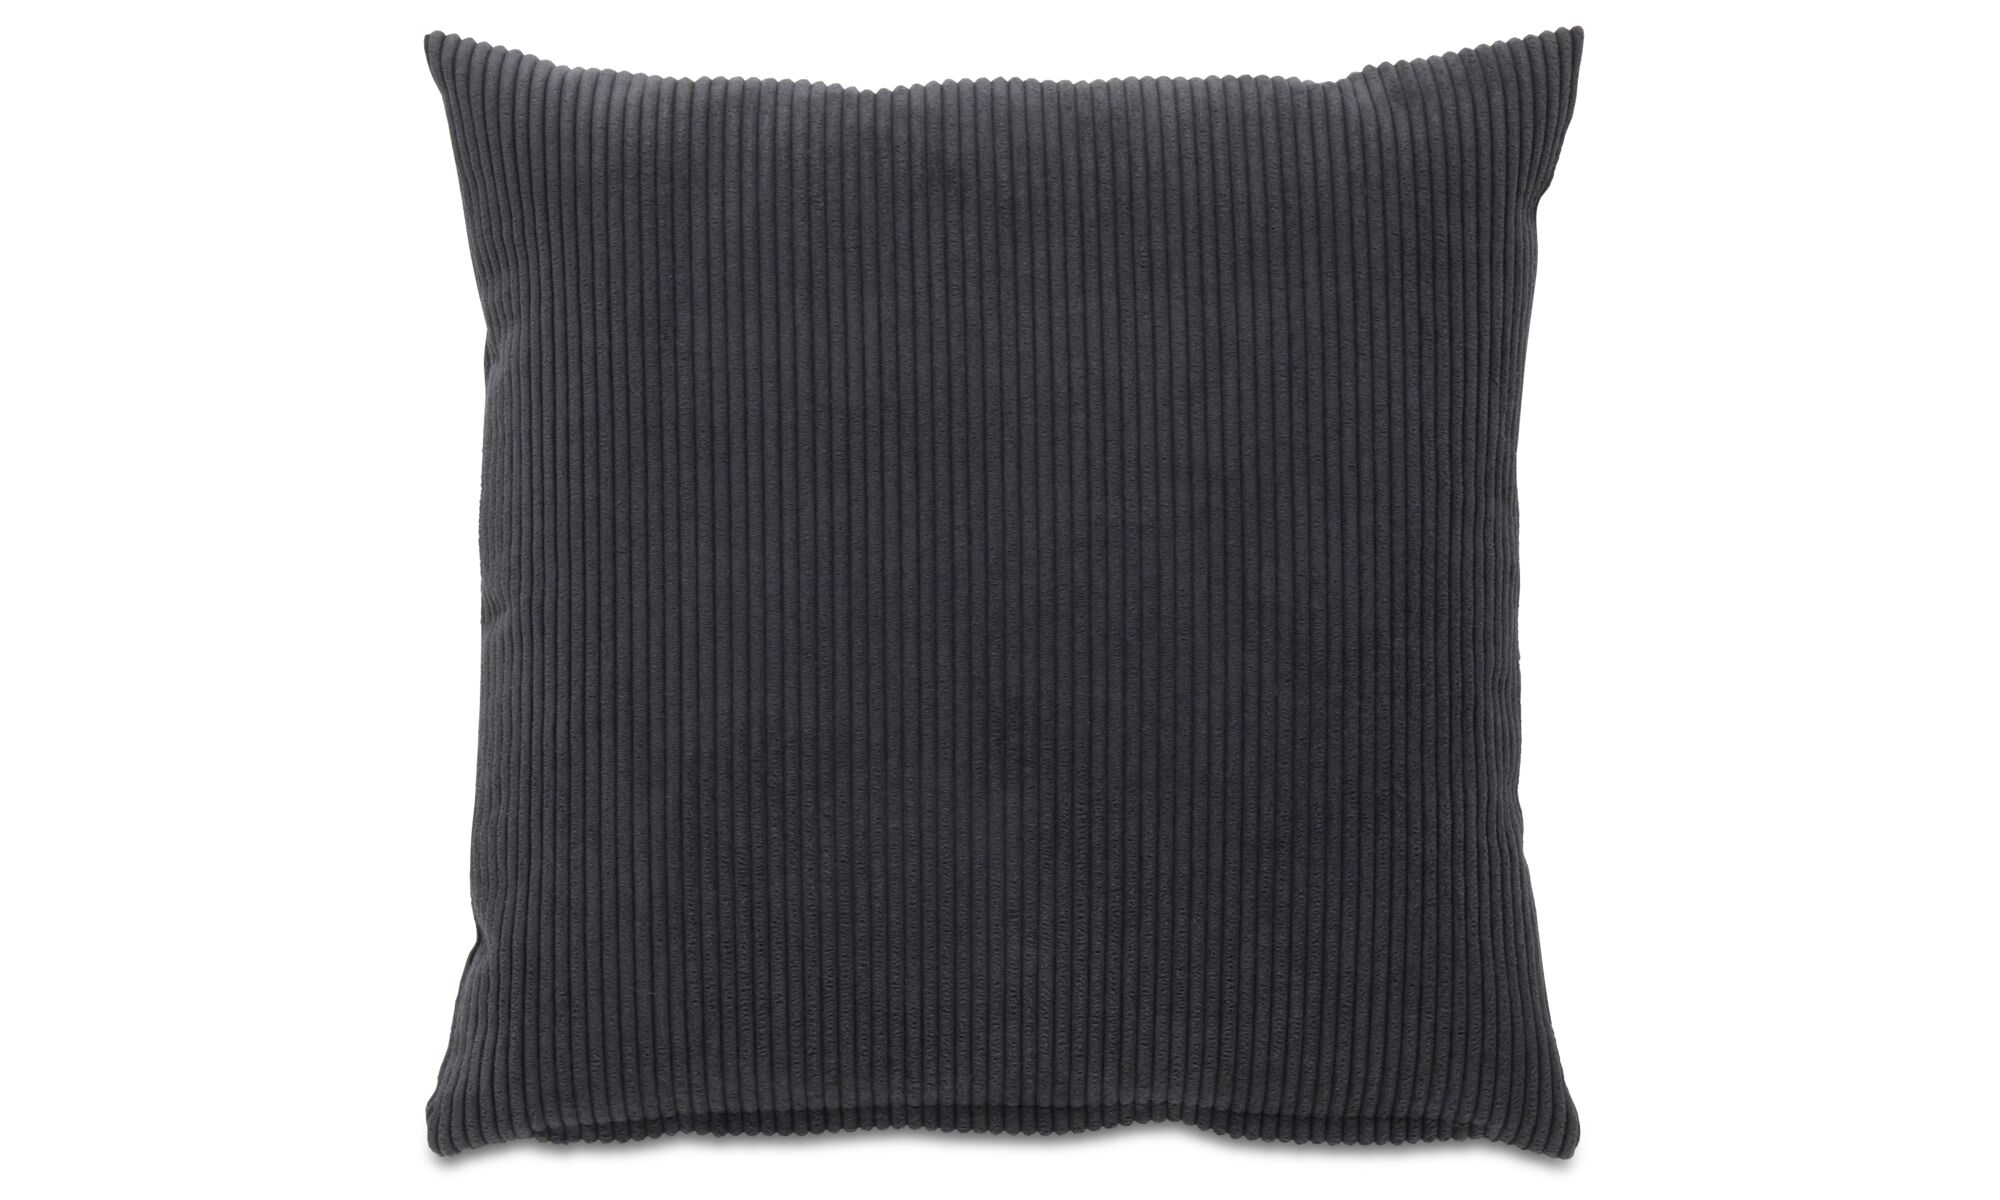 Cushions - Cord cushion - Grey - Fabric